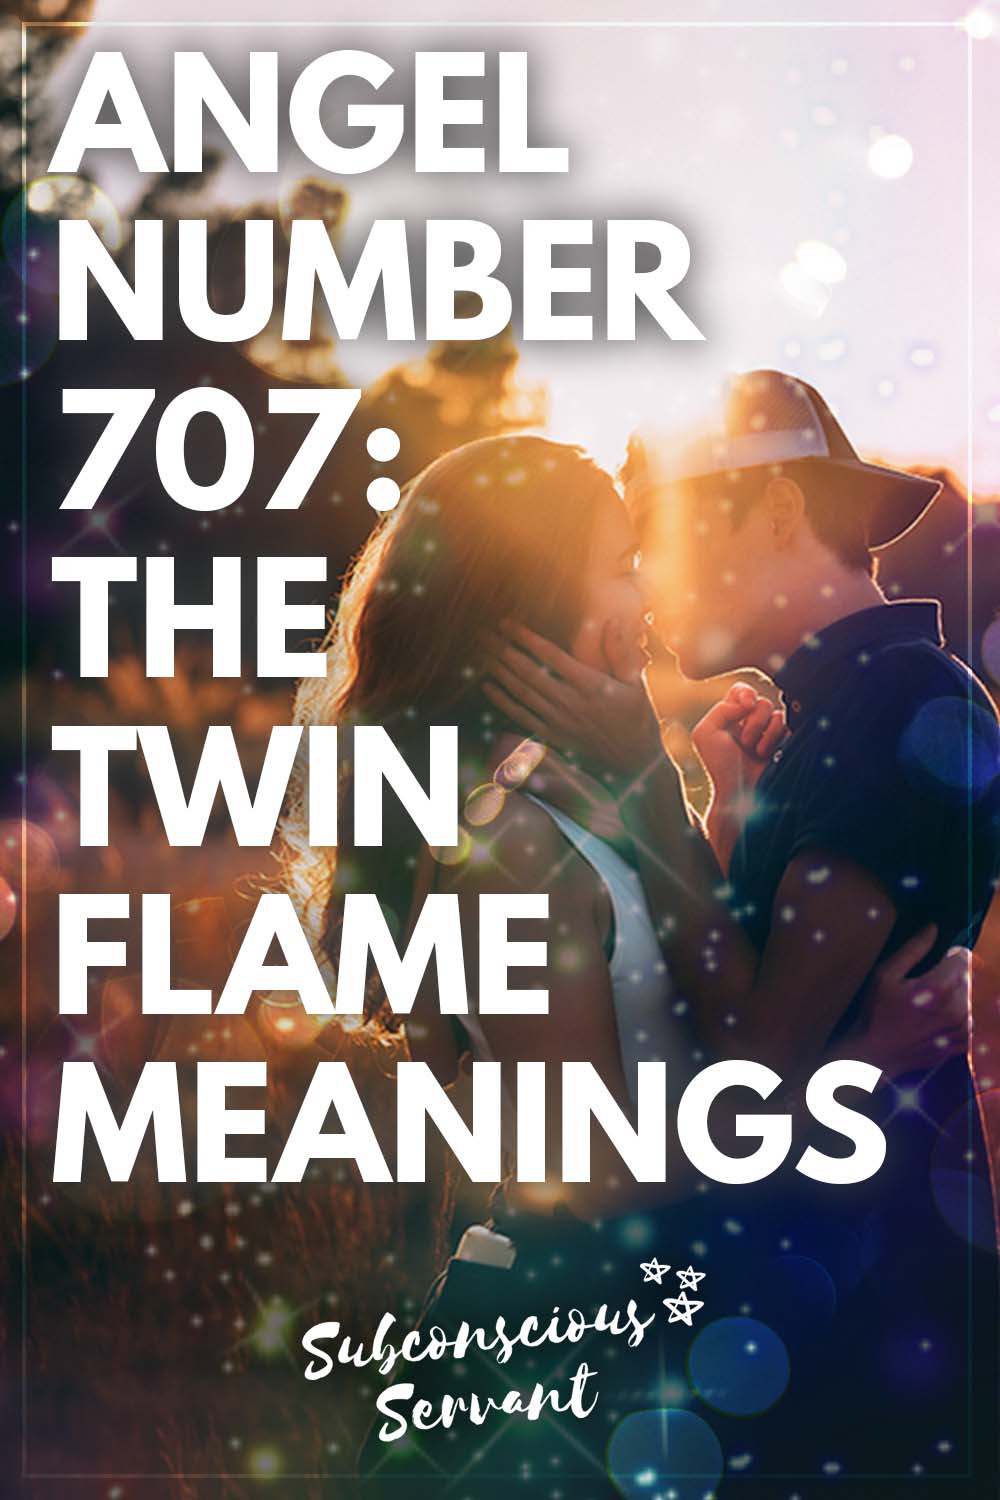 Angel number 707: The Twin Flame Meanings